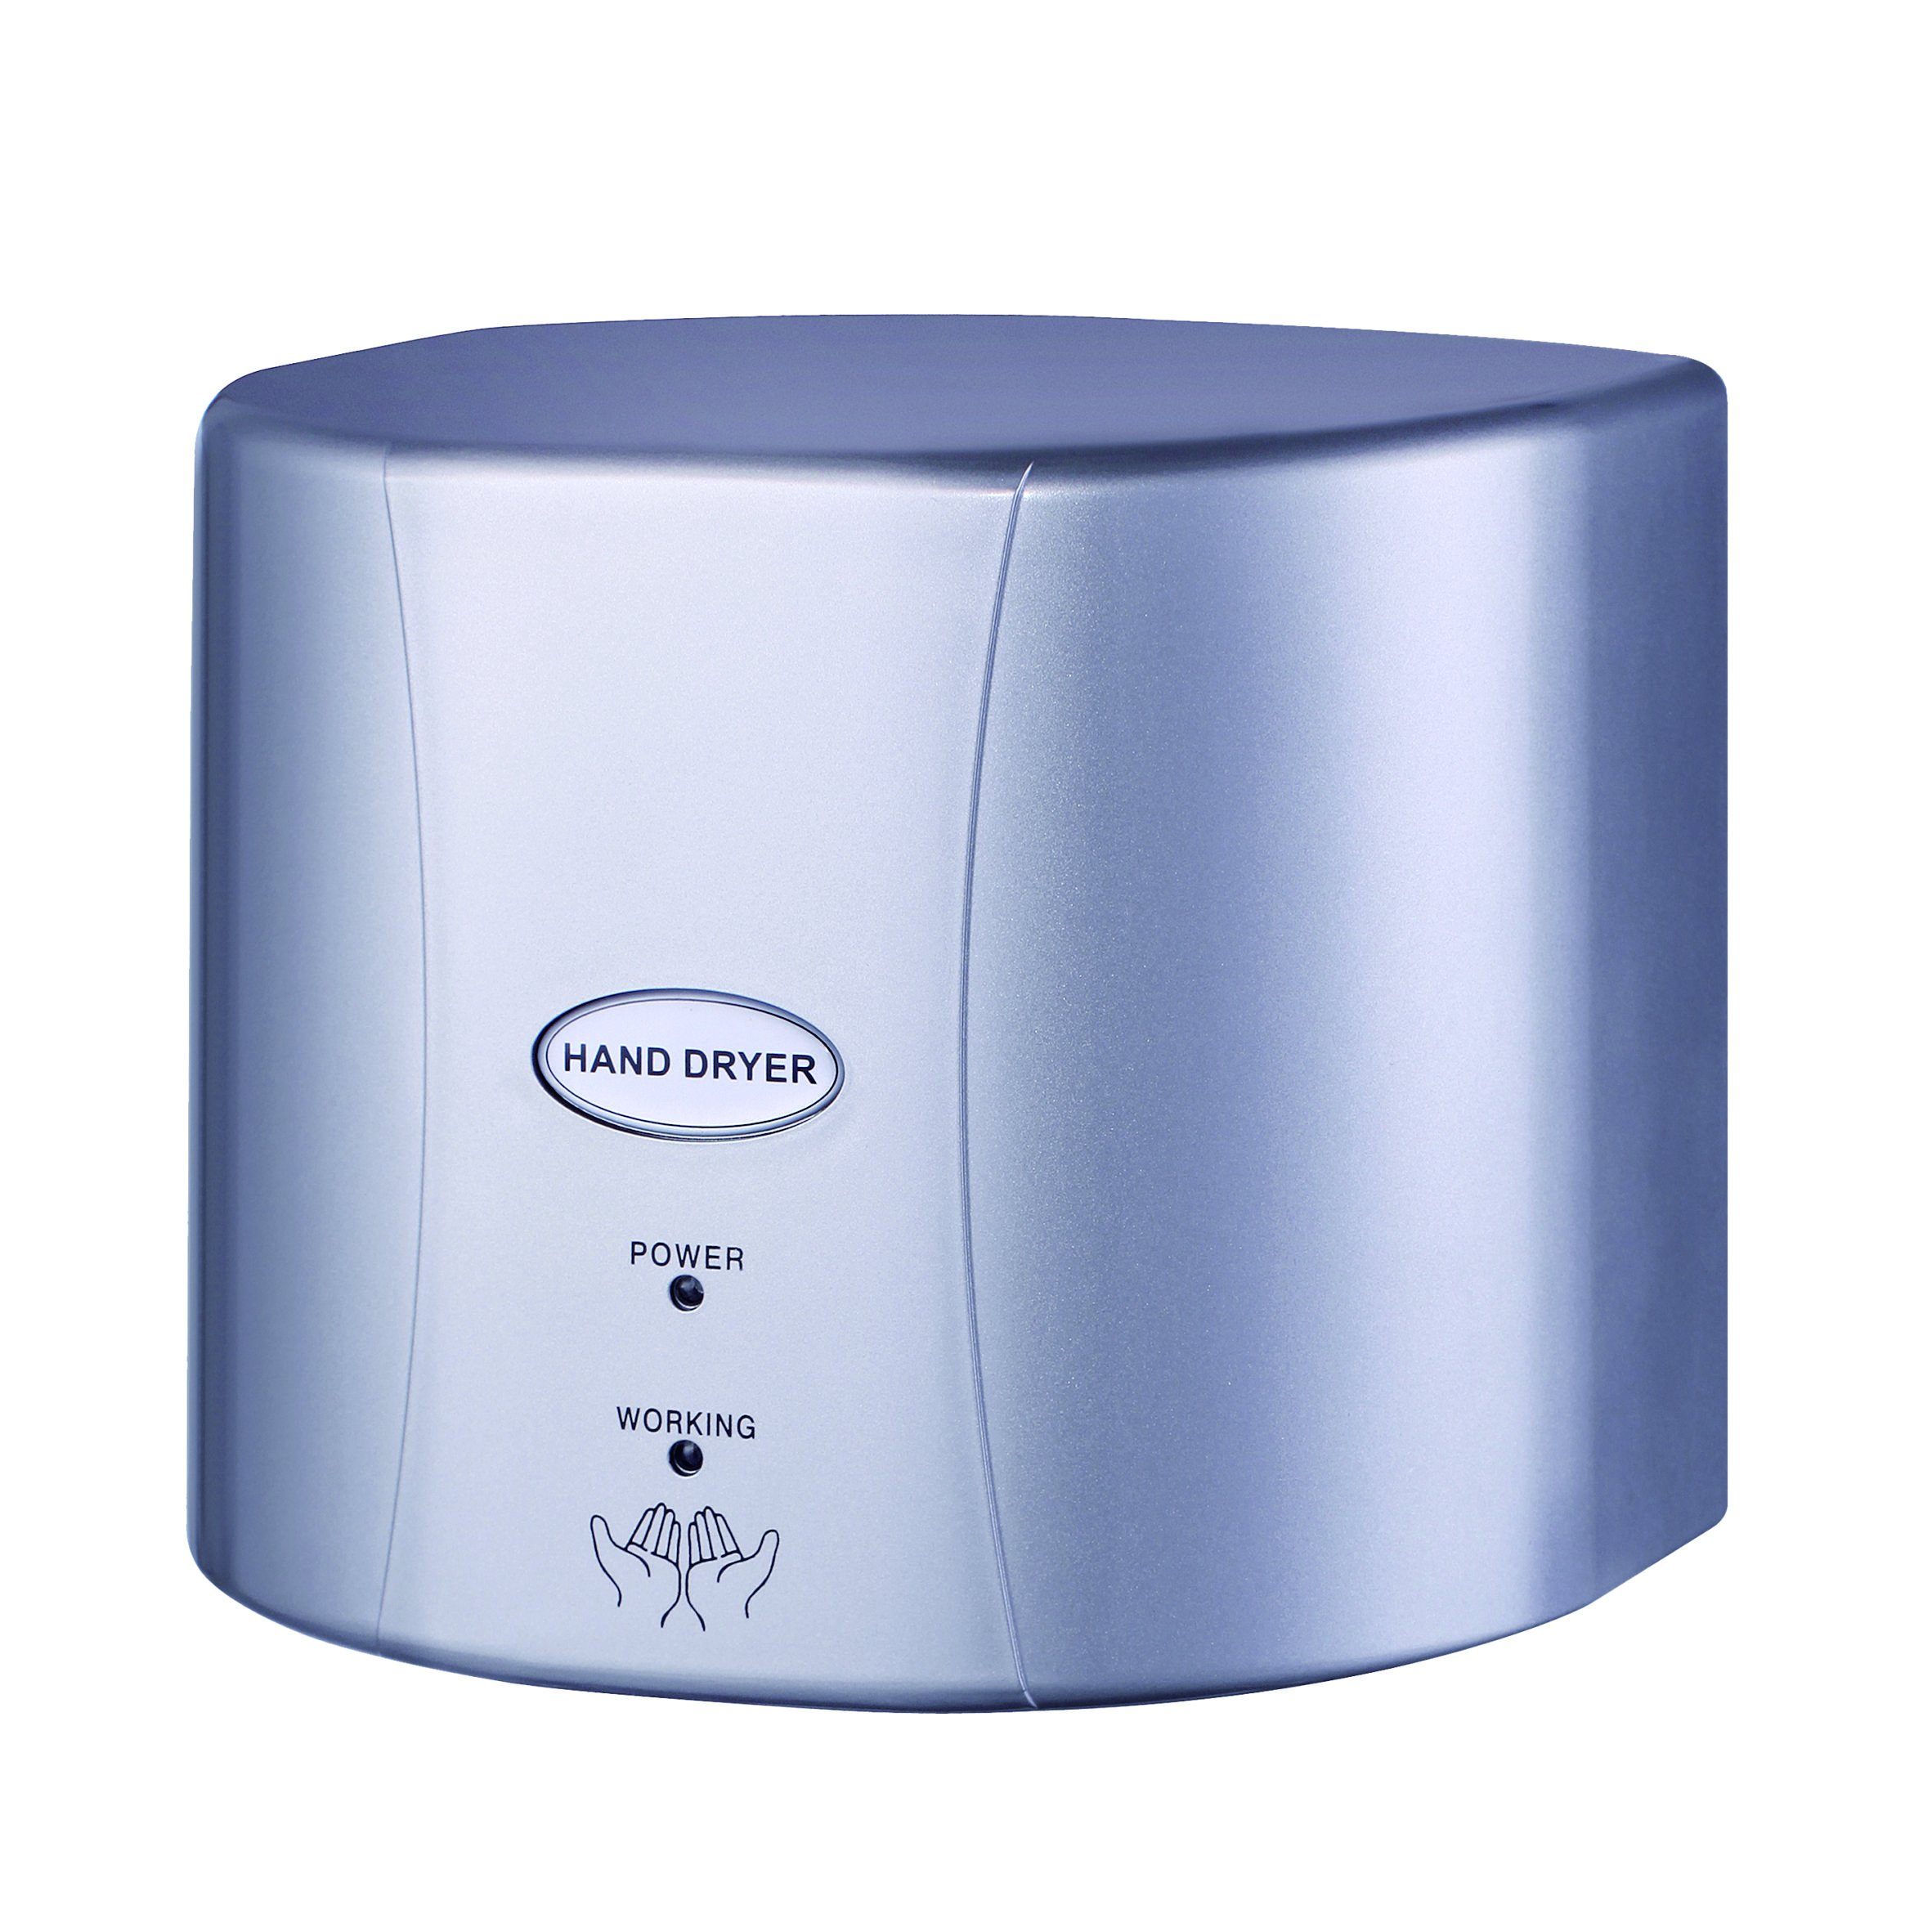 ASIALEO 110v/1350W Electric Automatic Hand Dryer,Commercial For Bathroom,High Speed With Low Noise, Sliver ABS Plastic Cover.